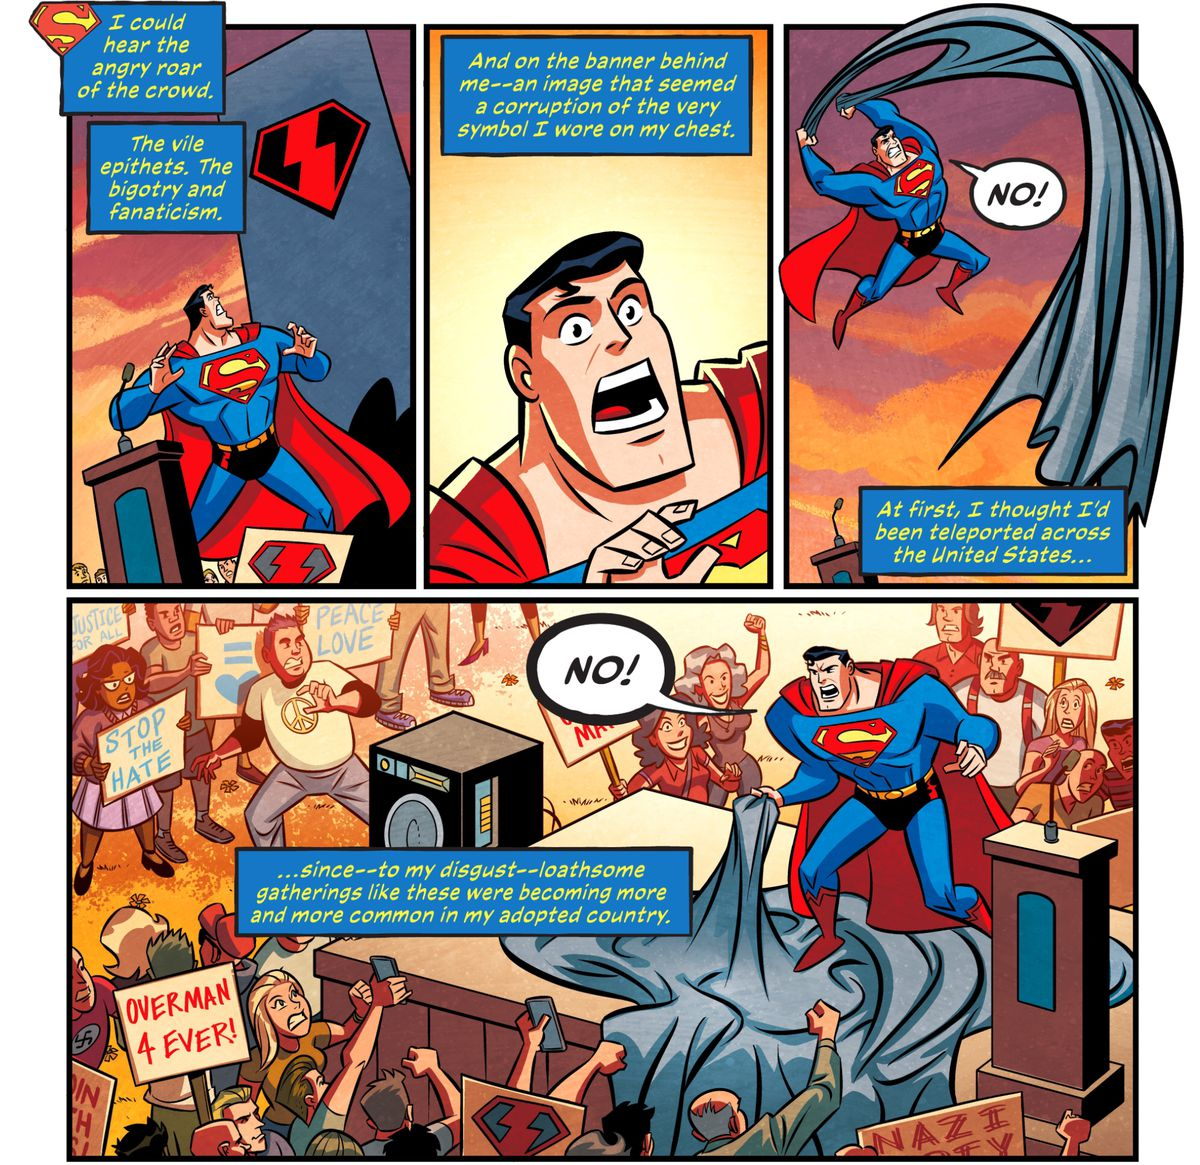 Superman is shocked to find himself in the middle of a rally/counter protest between anti-fascist pacifists and supporters of what appears to be a fascist version of his symbol — one of the supporters has a pro-Nazi sign, in Justice League Infinity #2 (2021).